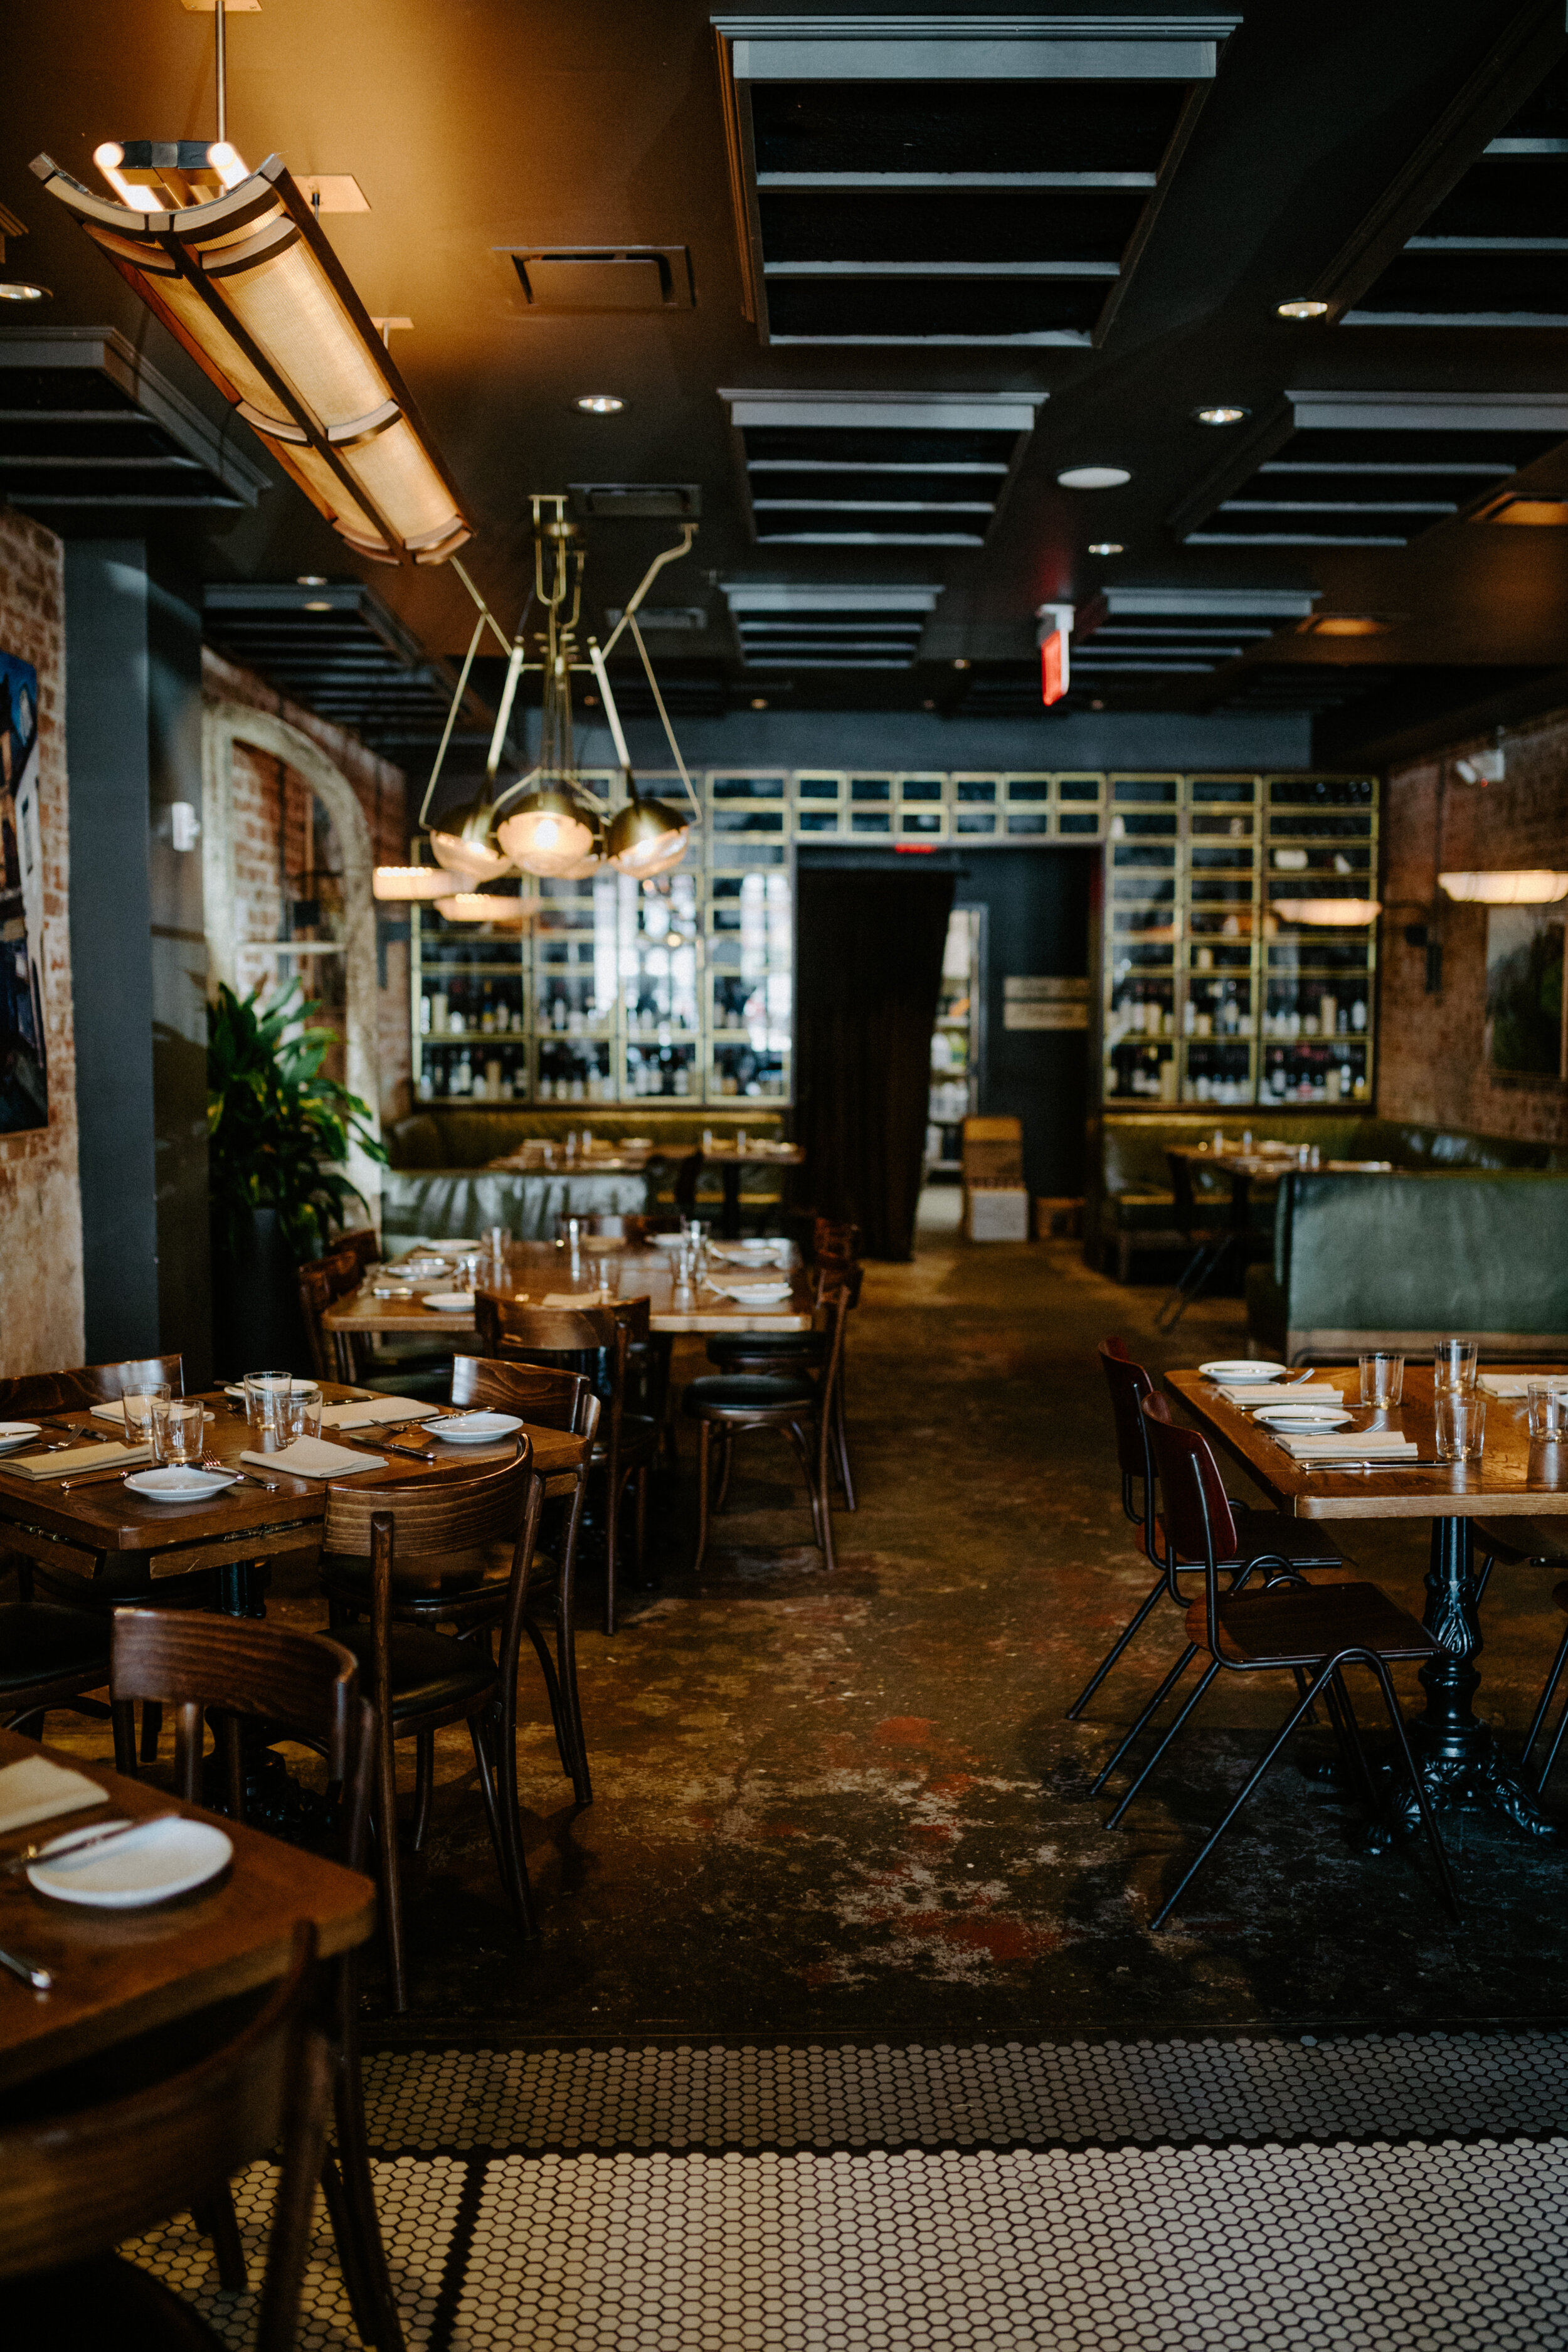 Compére Lapin Where to eat in New Orleans.JPG